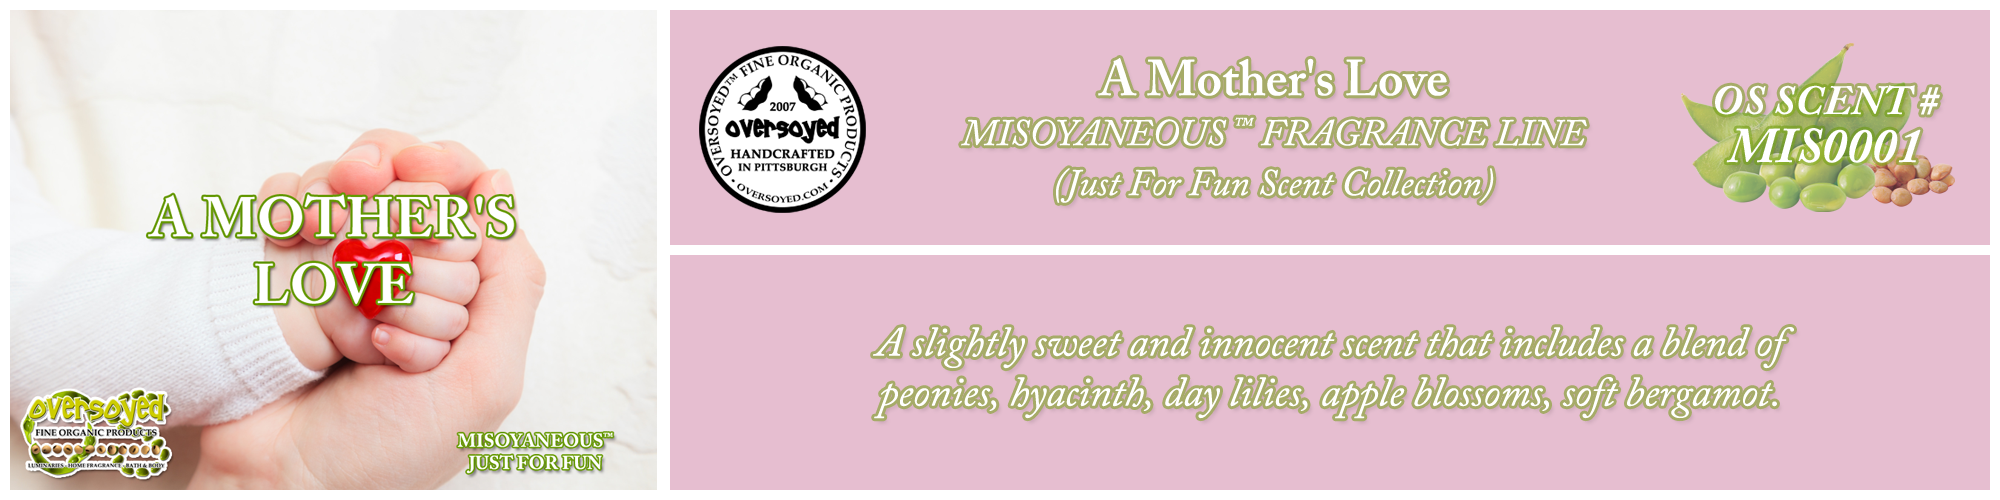 A Mother's Love Handcrafted Products Collection